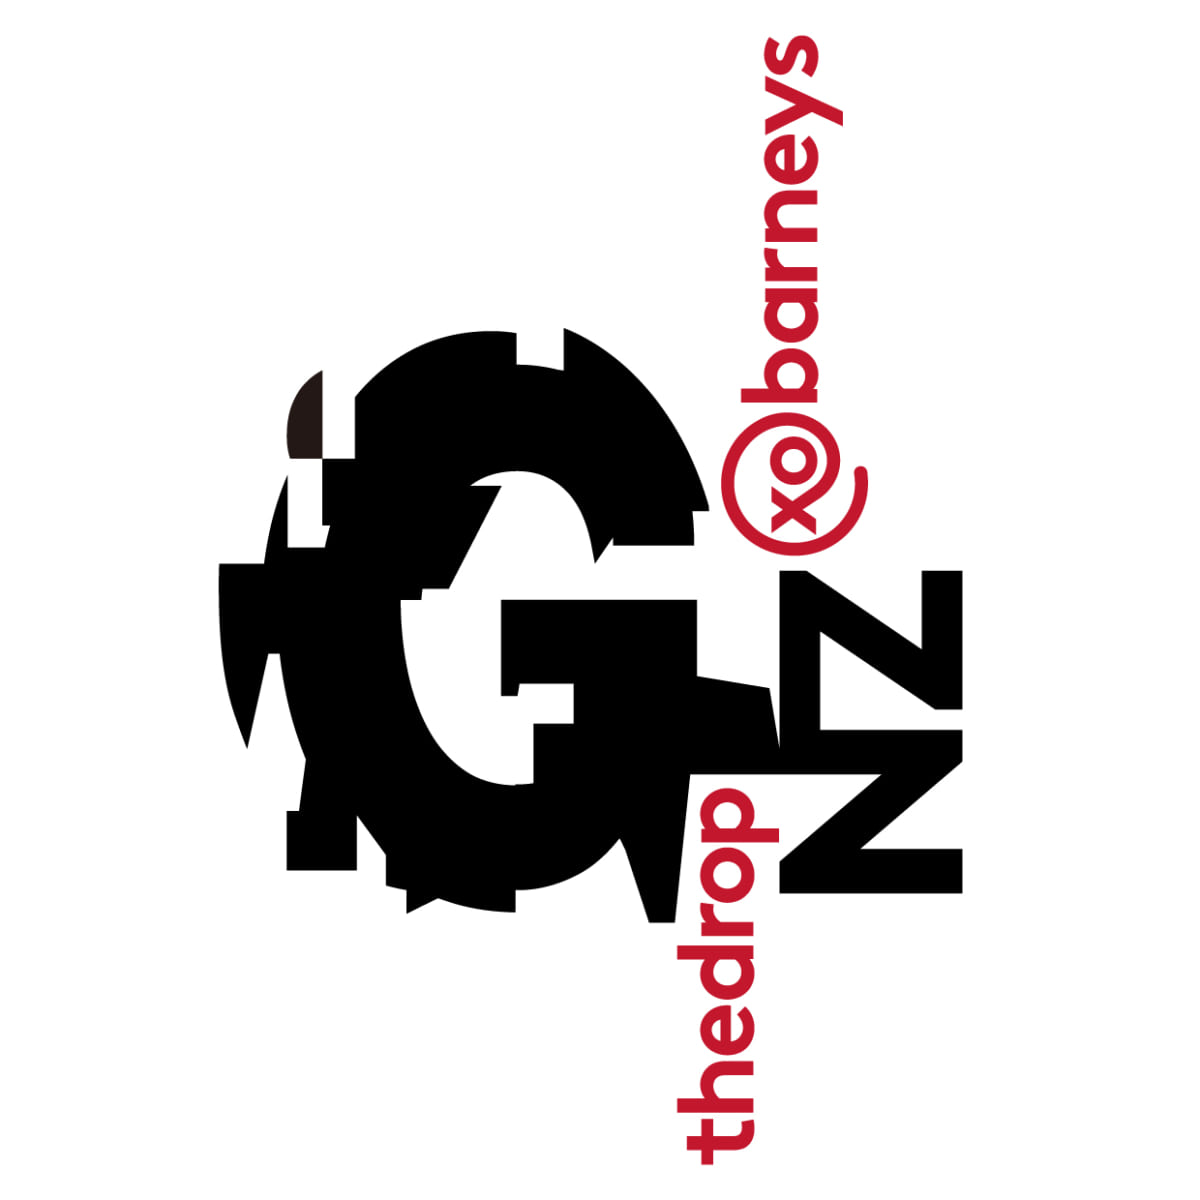 THE_DROP_GNZ_LOGO_02_SQUARE_RGB